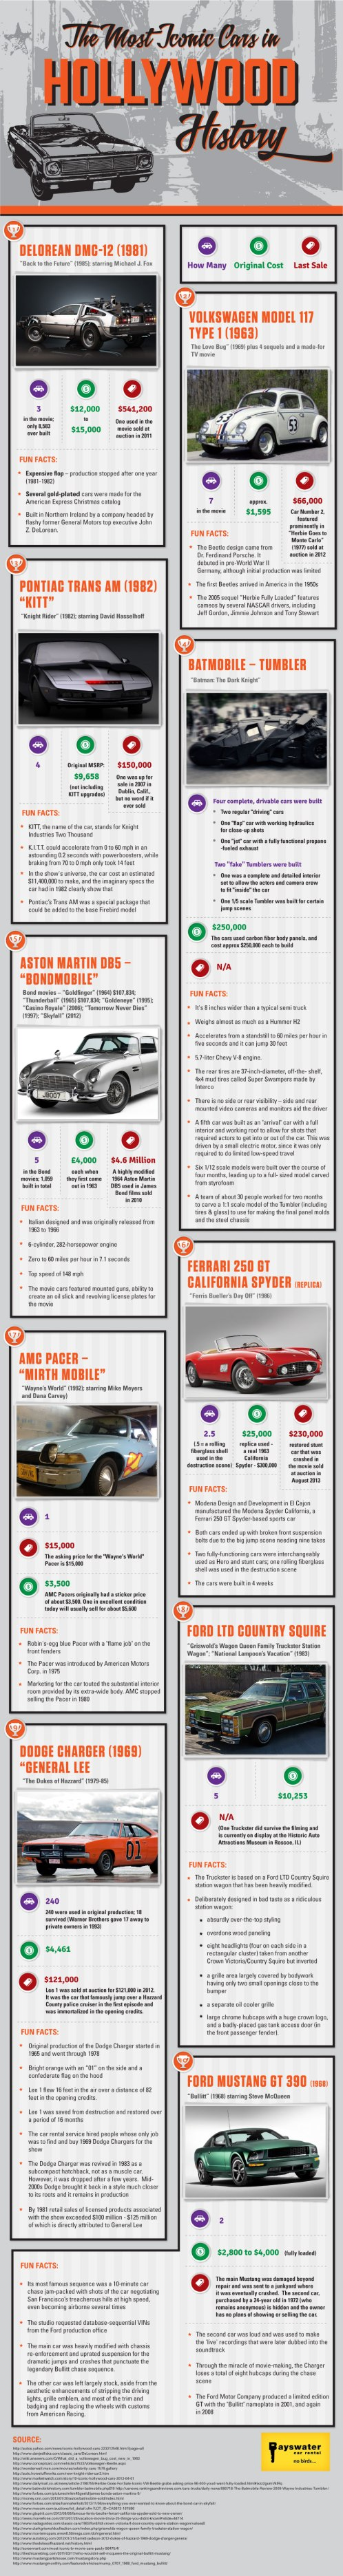 the-most-iconic-cars-in-hollywood-history_529f6518c6ec1